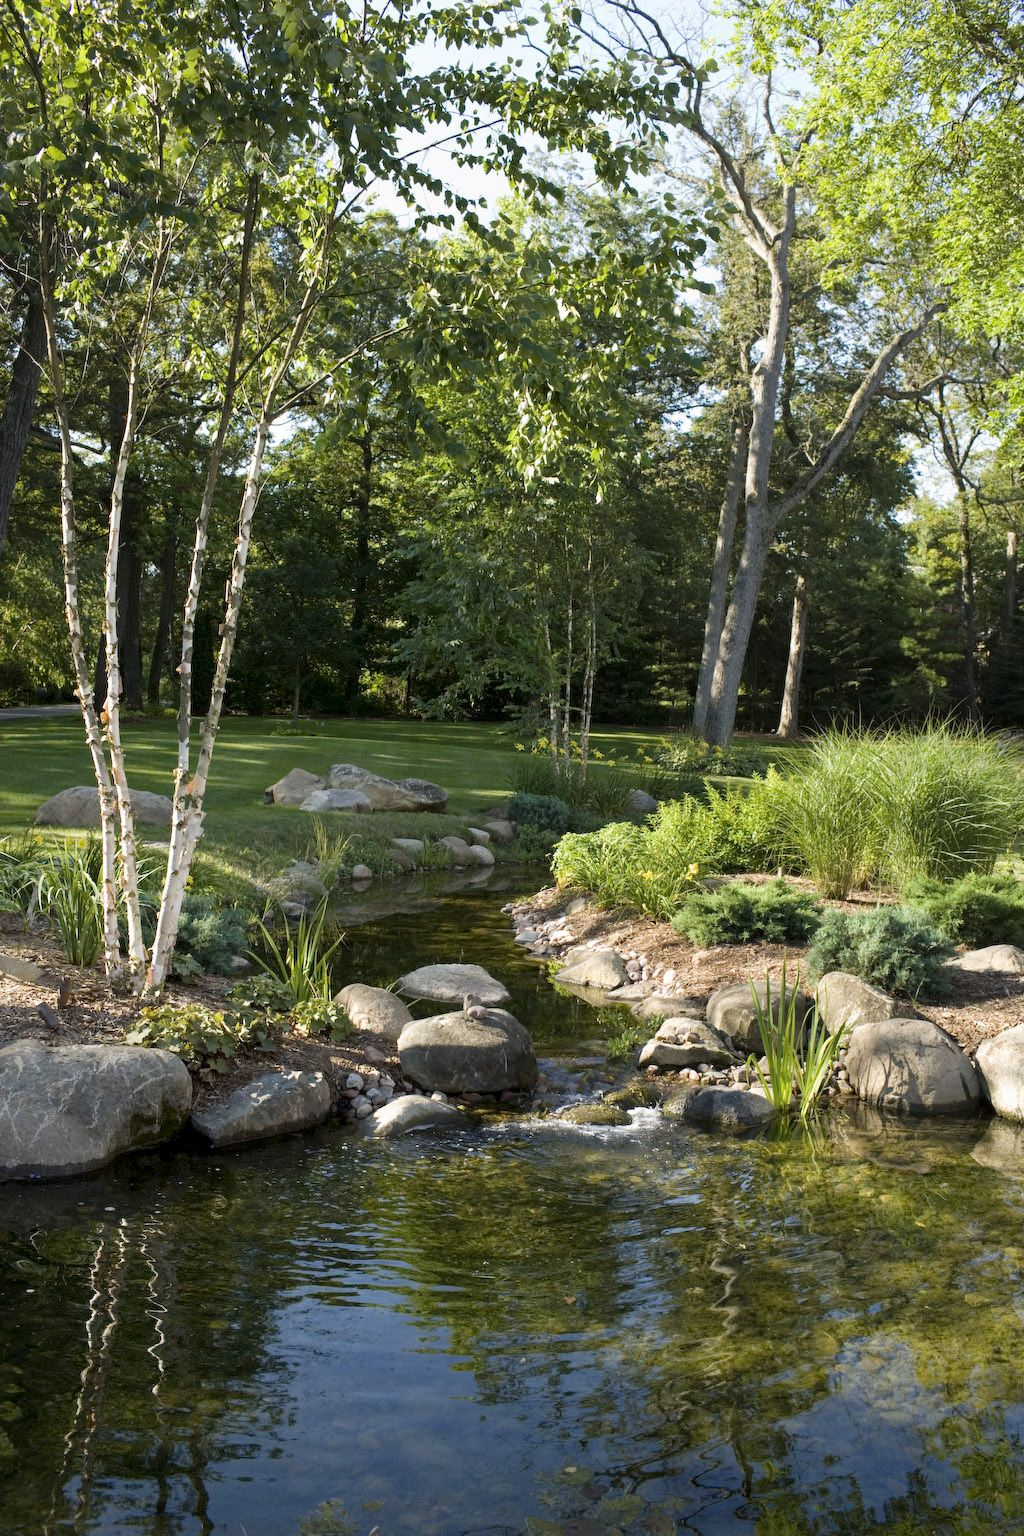 Pin by Heather Atherton on Ponds and Waterfalls   Water ... on Backyard Stream Ideas id=24741